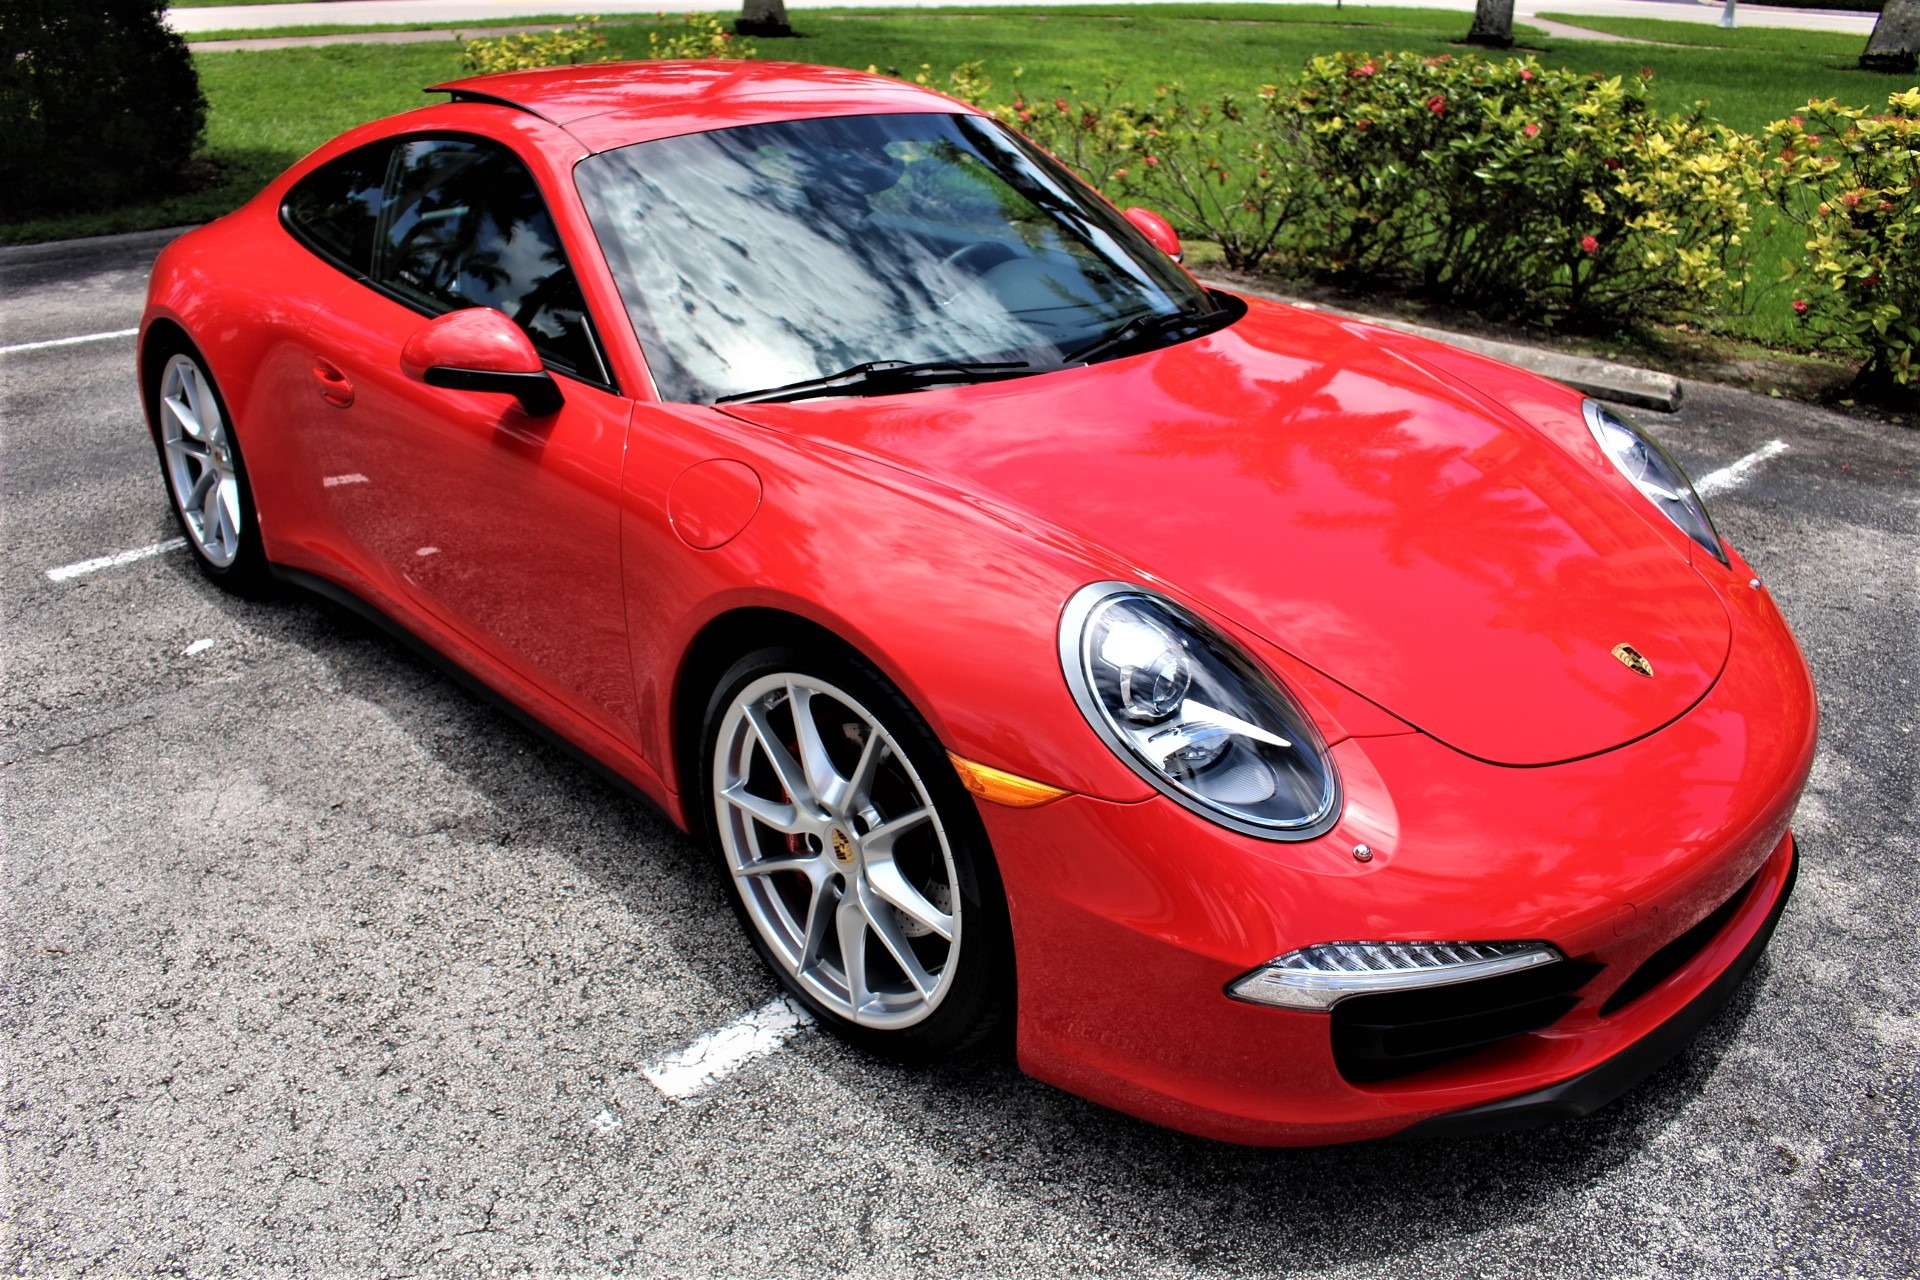 Used 2014 Porsche 911 Carrera 4S for sale Sold at The Gables Sports Cars in Miami FL 33146 4